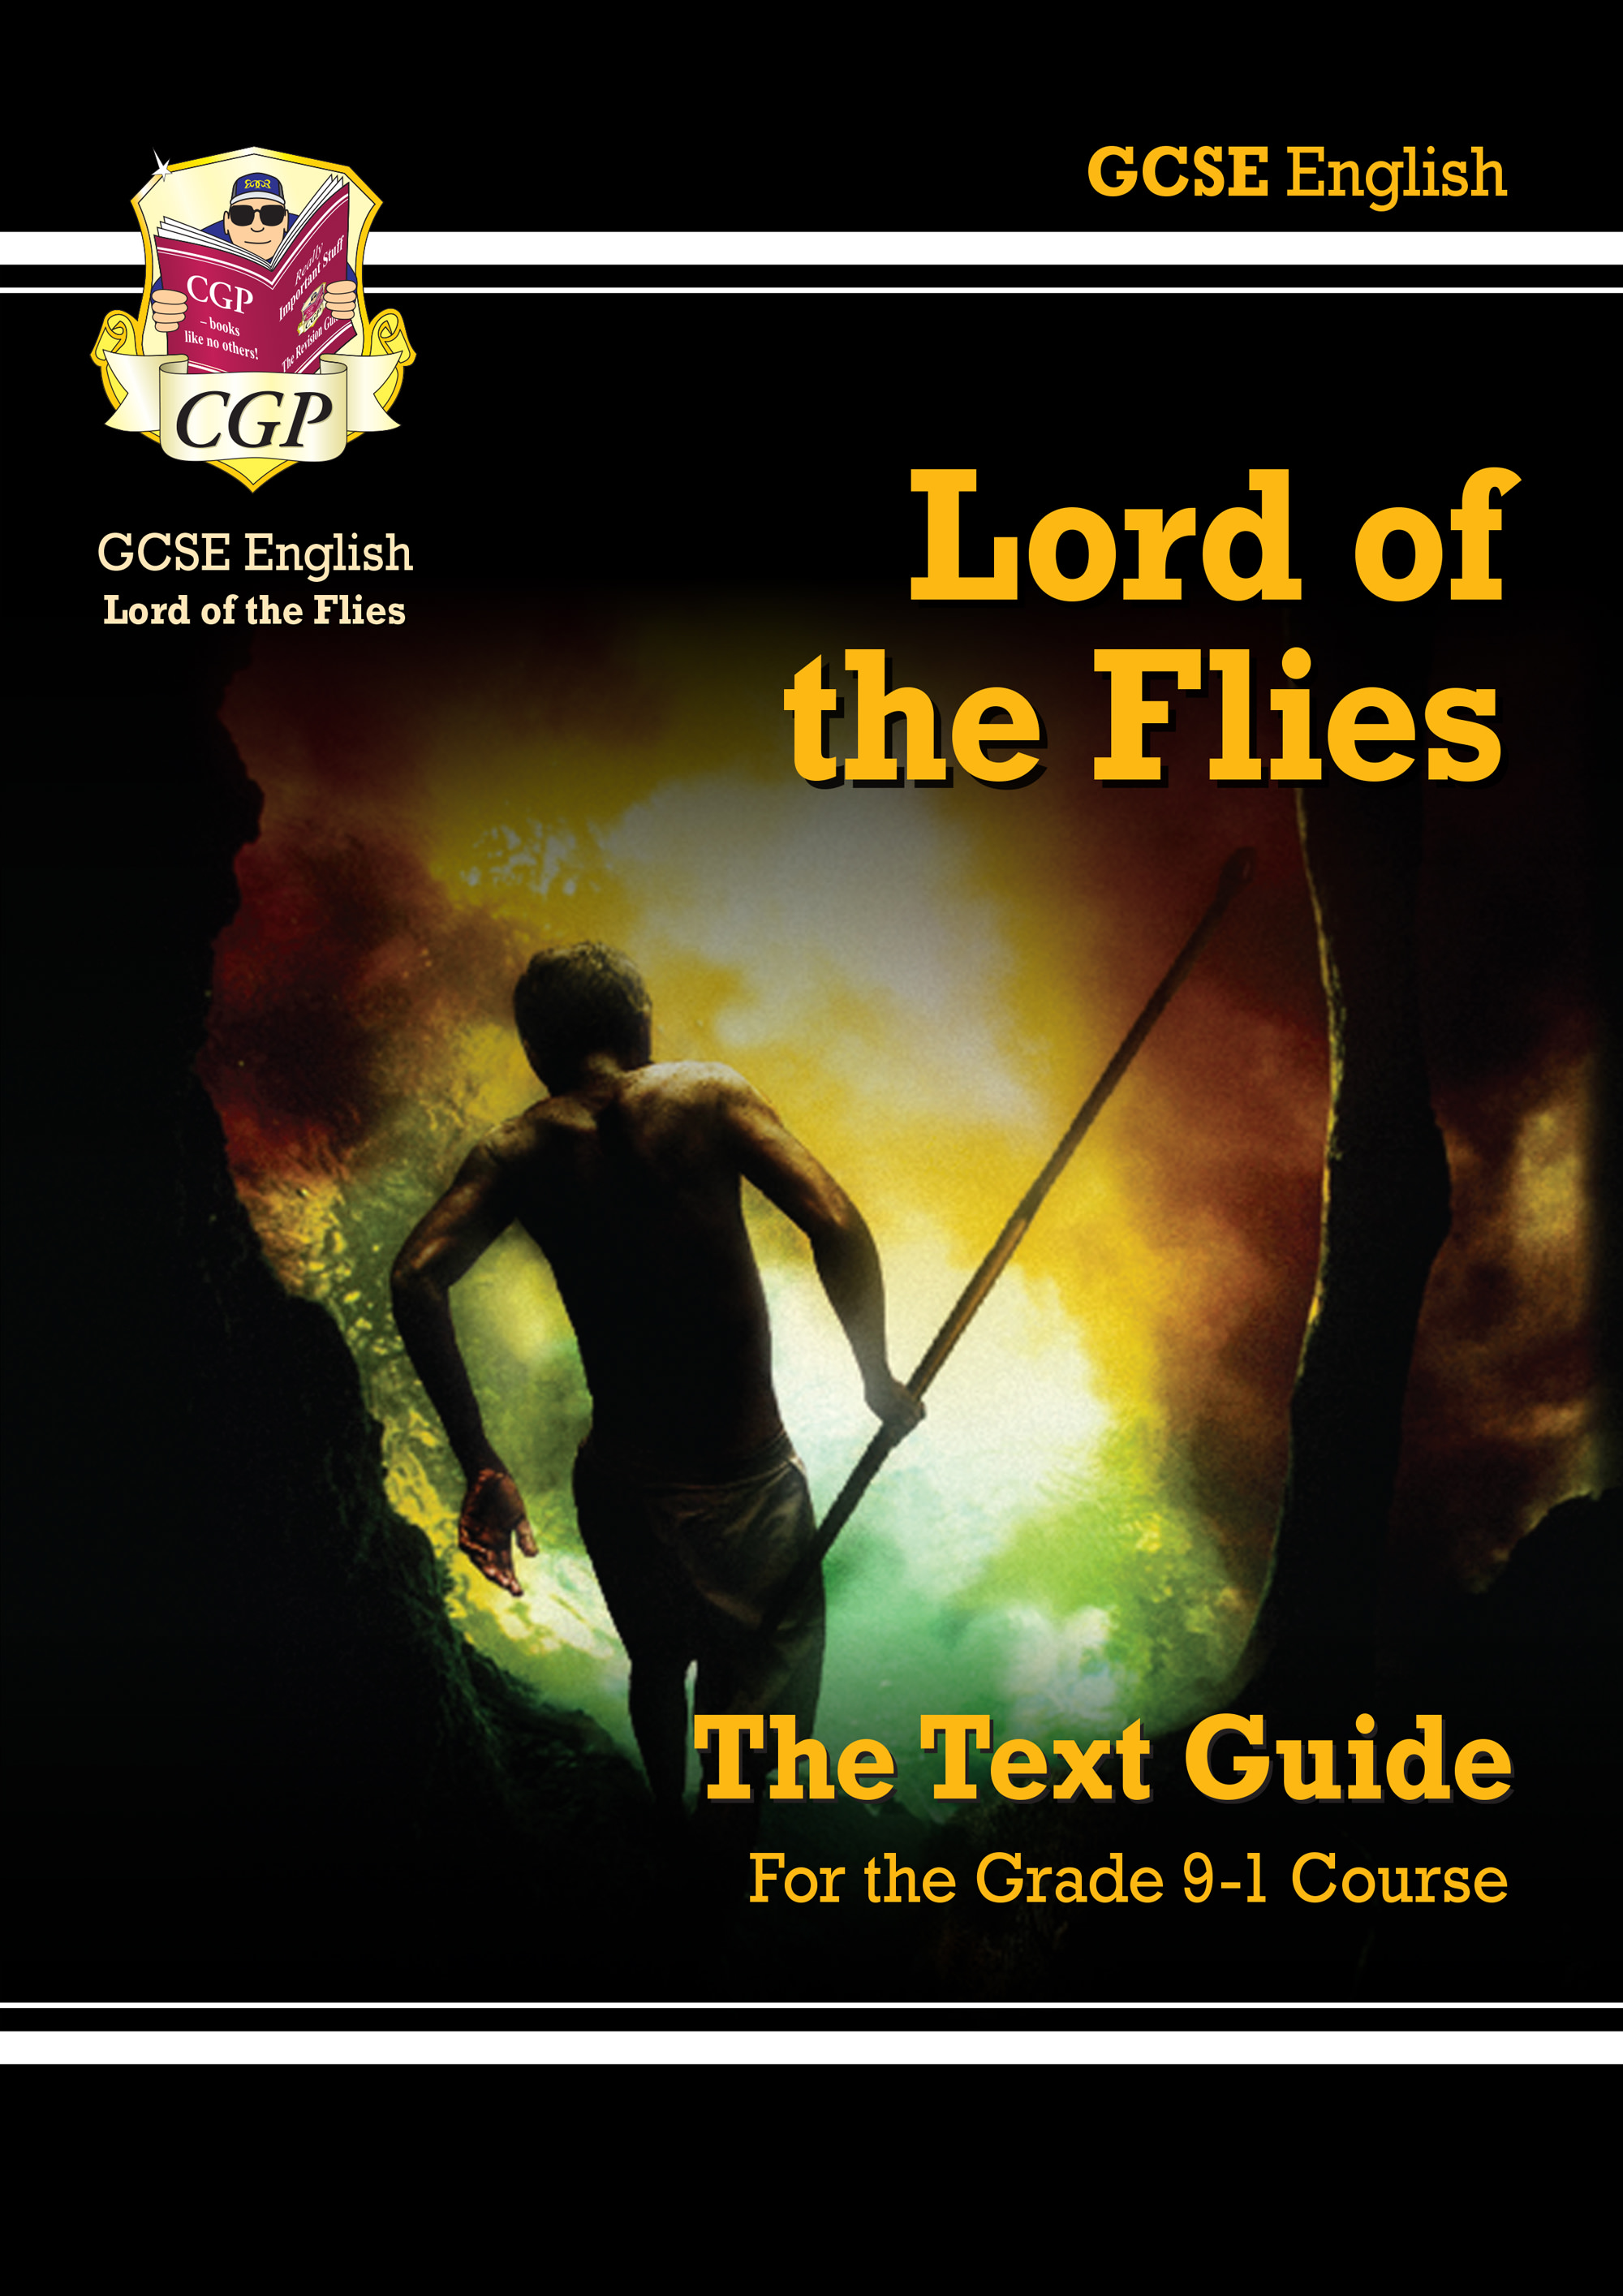 ETL44 - Grade 9-1 GCSE English Text Guide - Lord of the Flies